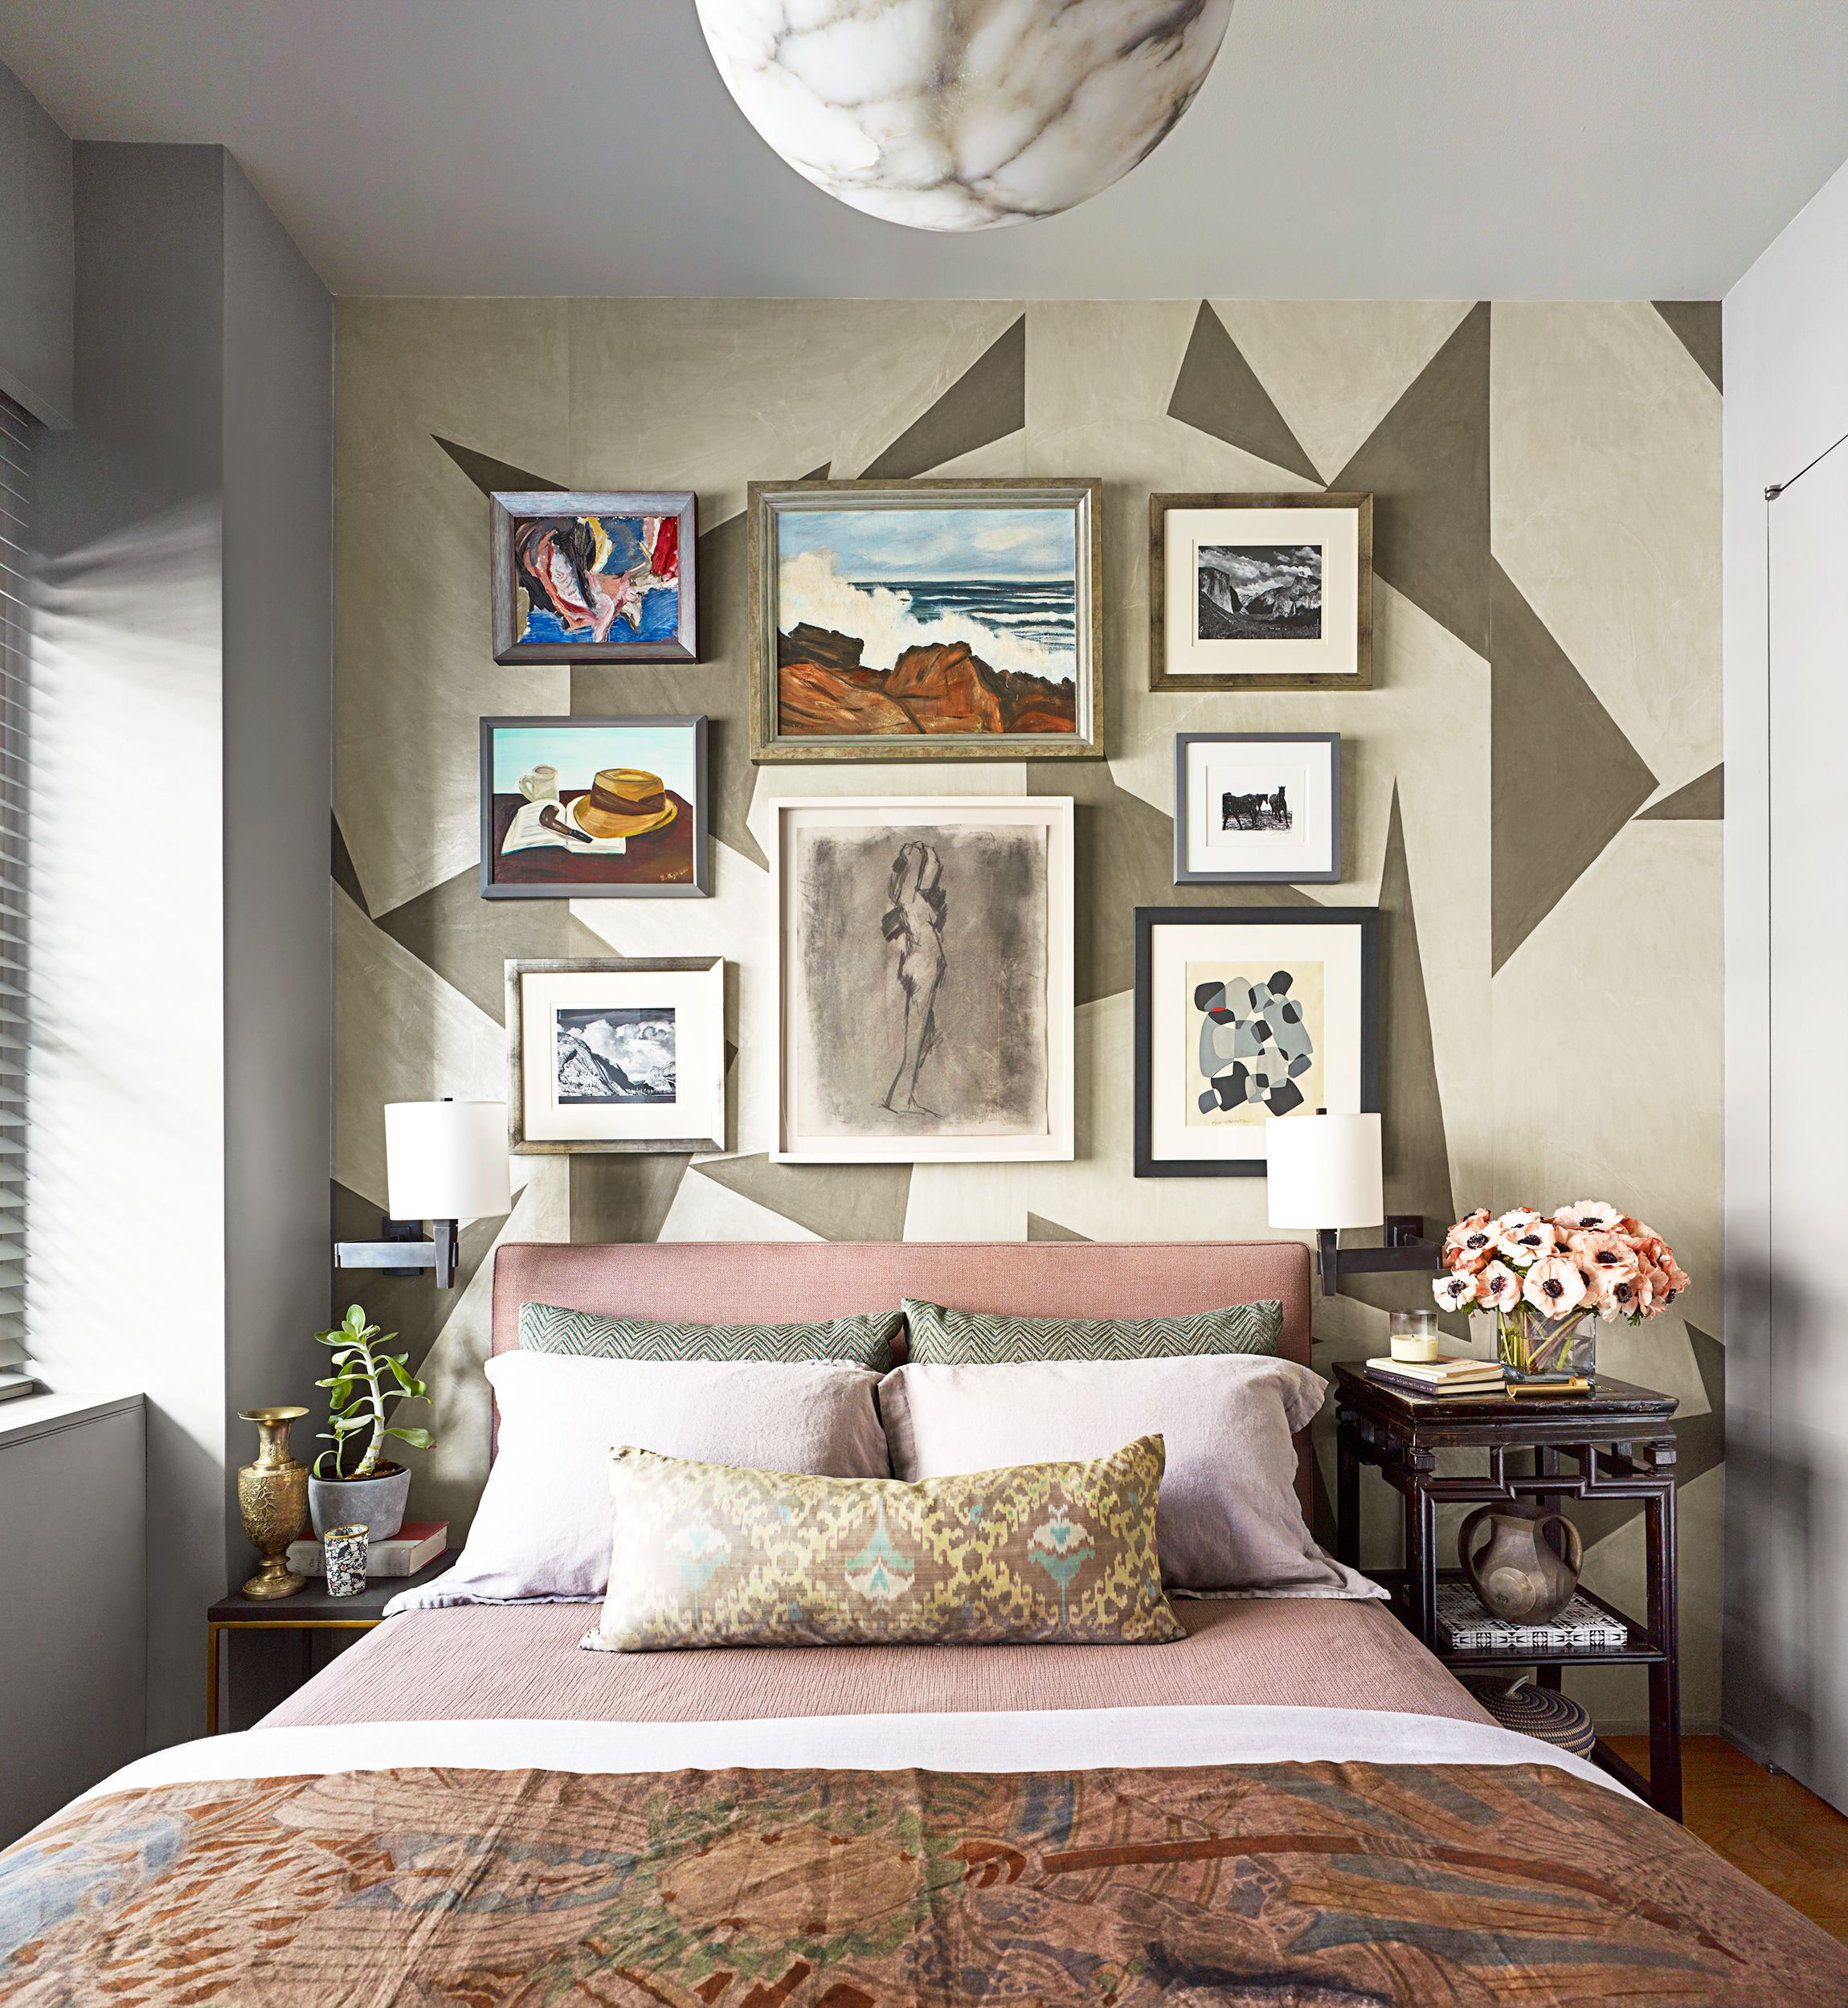 25 Small Bedroom Design Ideas - How to Decorate a Small ... on Small Room Decoration  id=65159